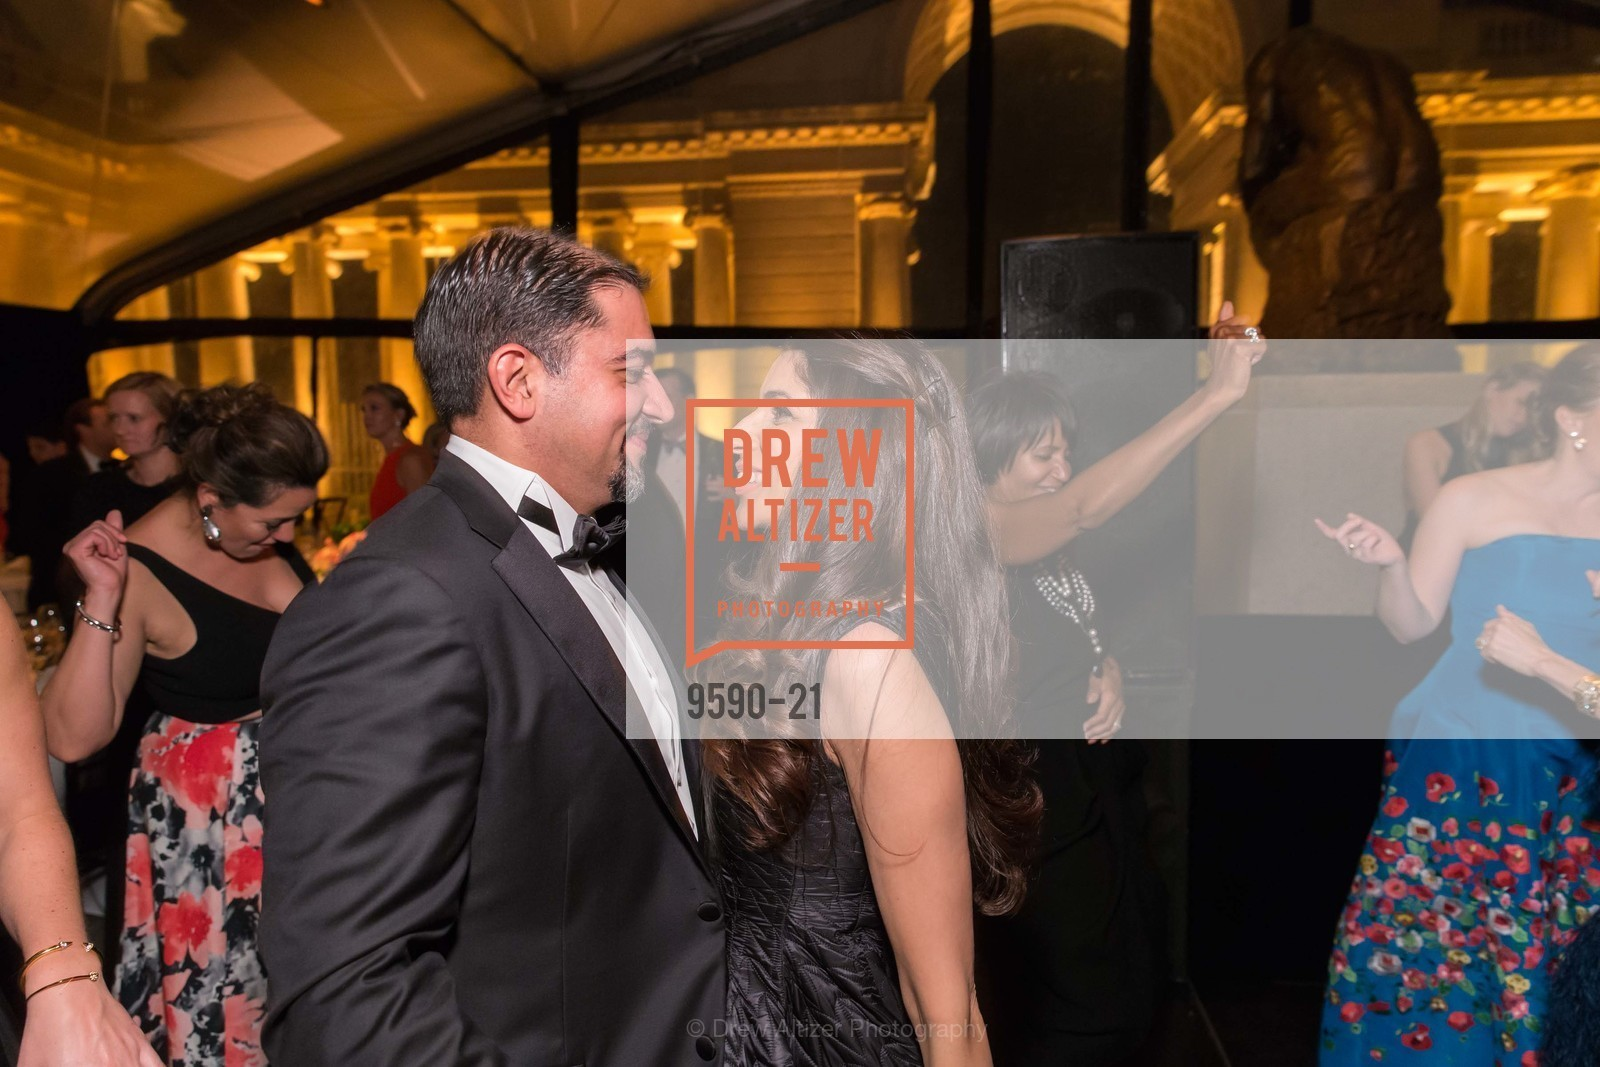 Nadir Shaikh, Sobia Shaikh, DIOR and CONDE NAST Sponsor the MidWinter Gala, March 26th, 2015,Drew Altizer, Drew Altizer Photography, full-service agency, private events, San Francisco photographer, photographer california